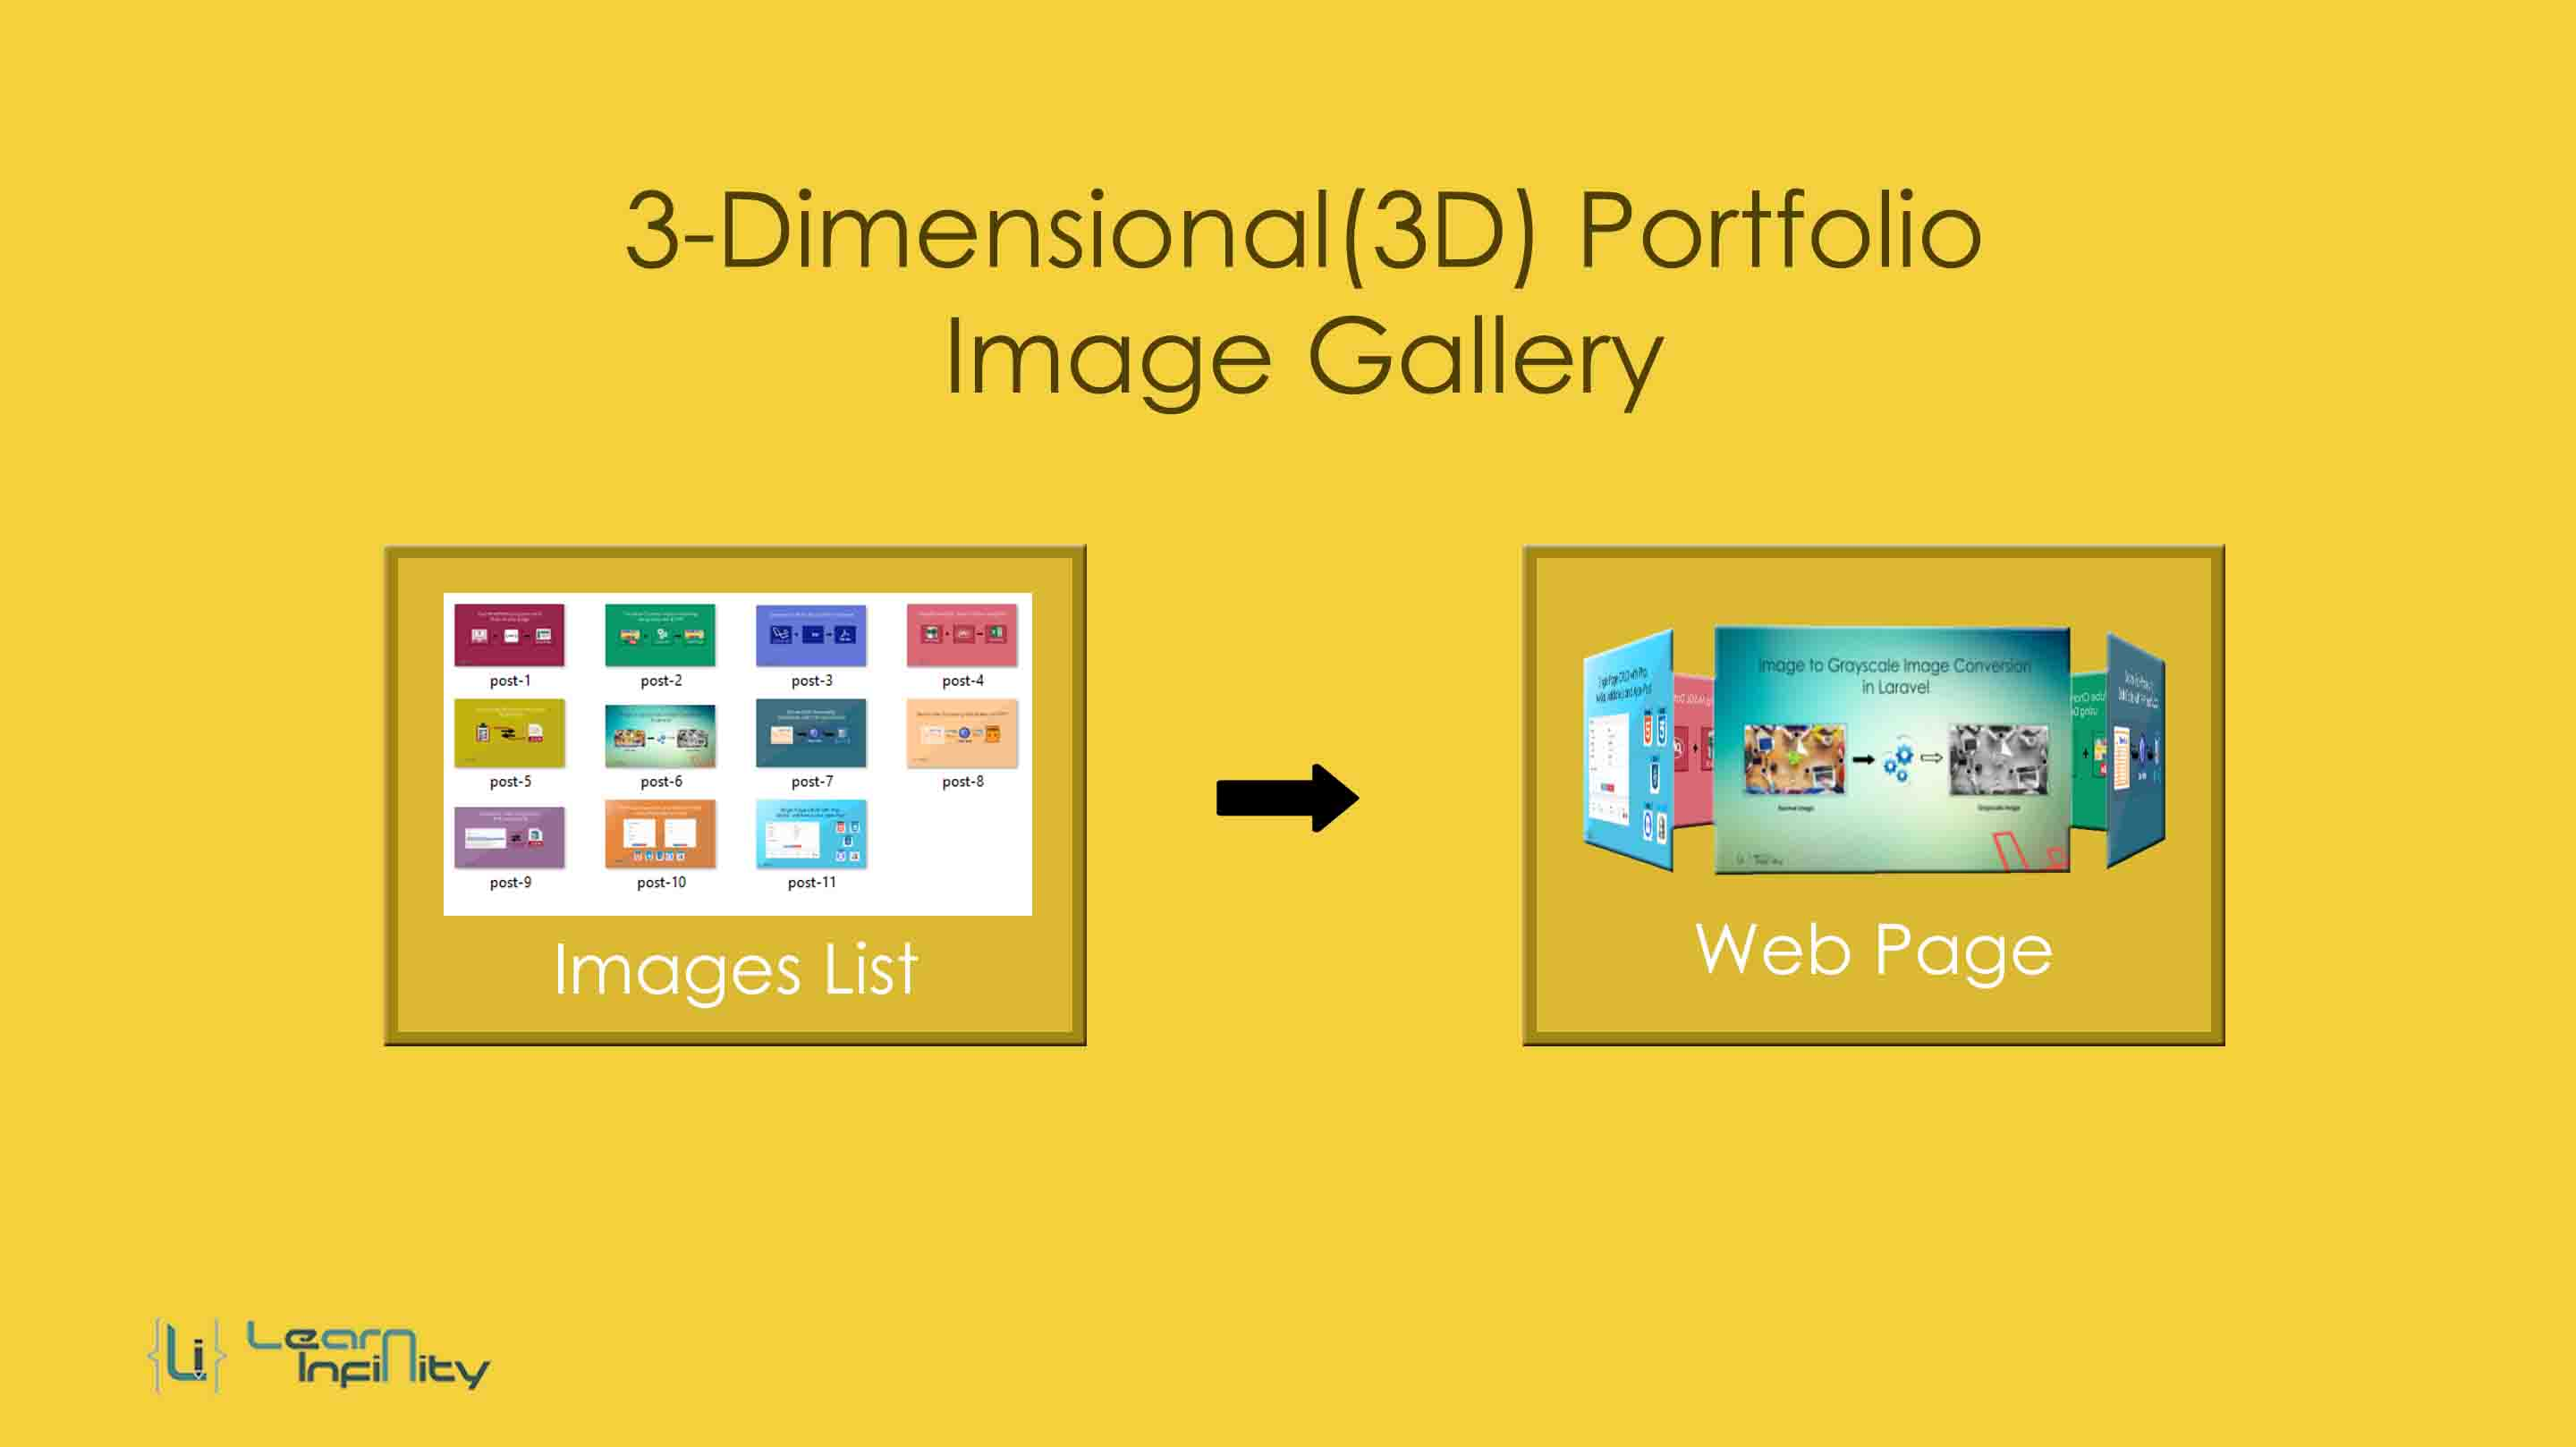 3-Dimensional(3D) Portfolio Image Gallery using HTML & CSS